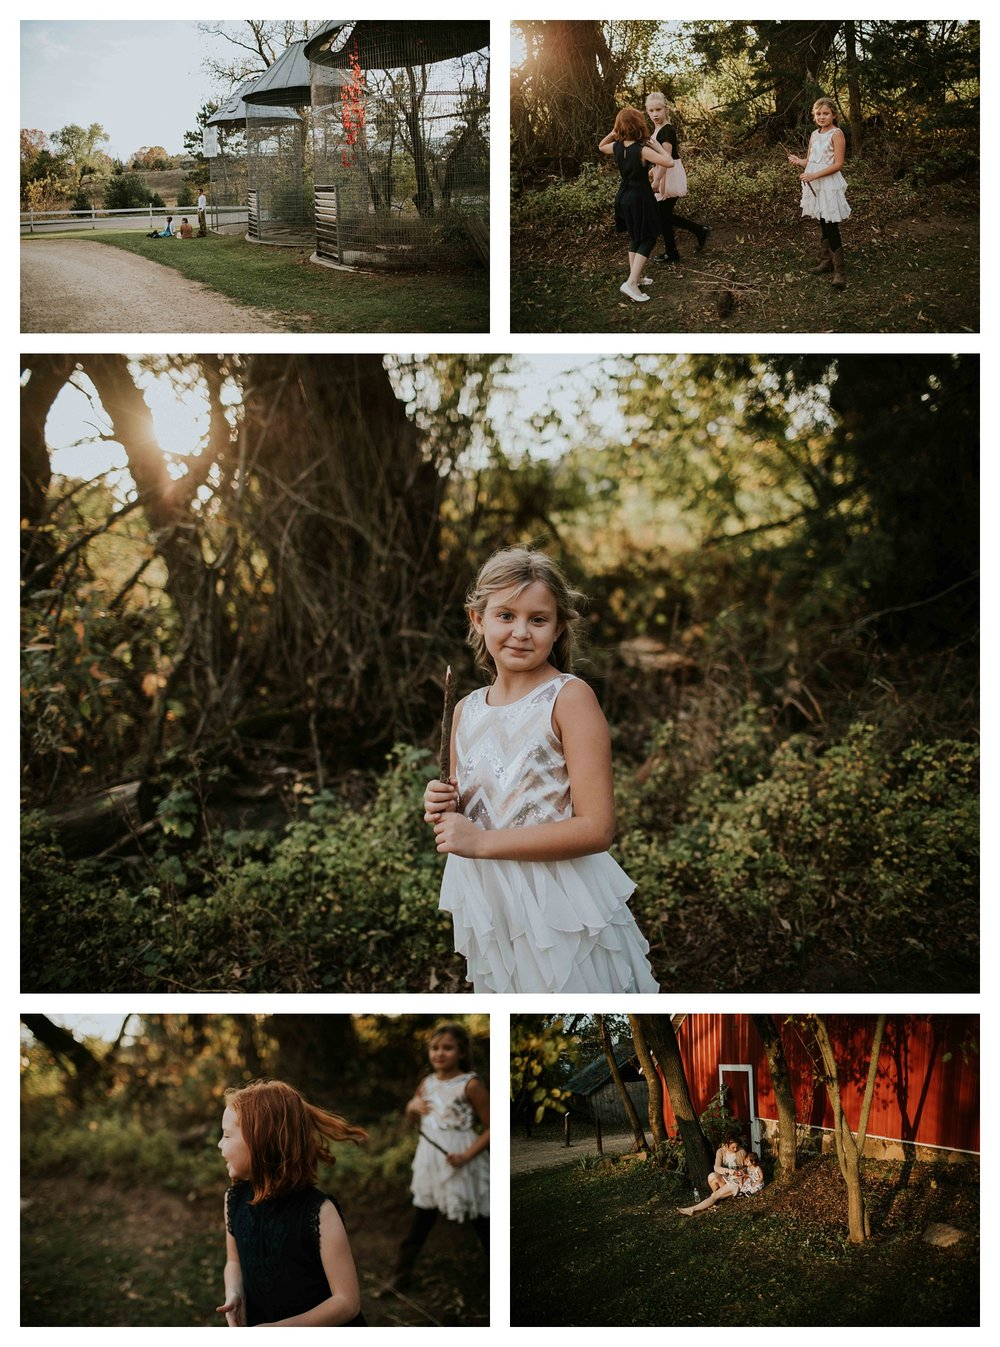 clauson barn wedding photographer chloe ann photography madison wisconsin photographer_0018.jpg